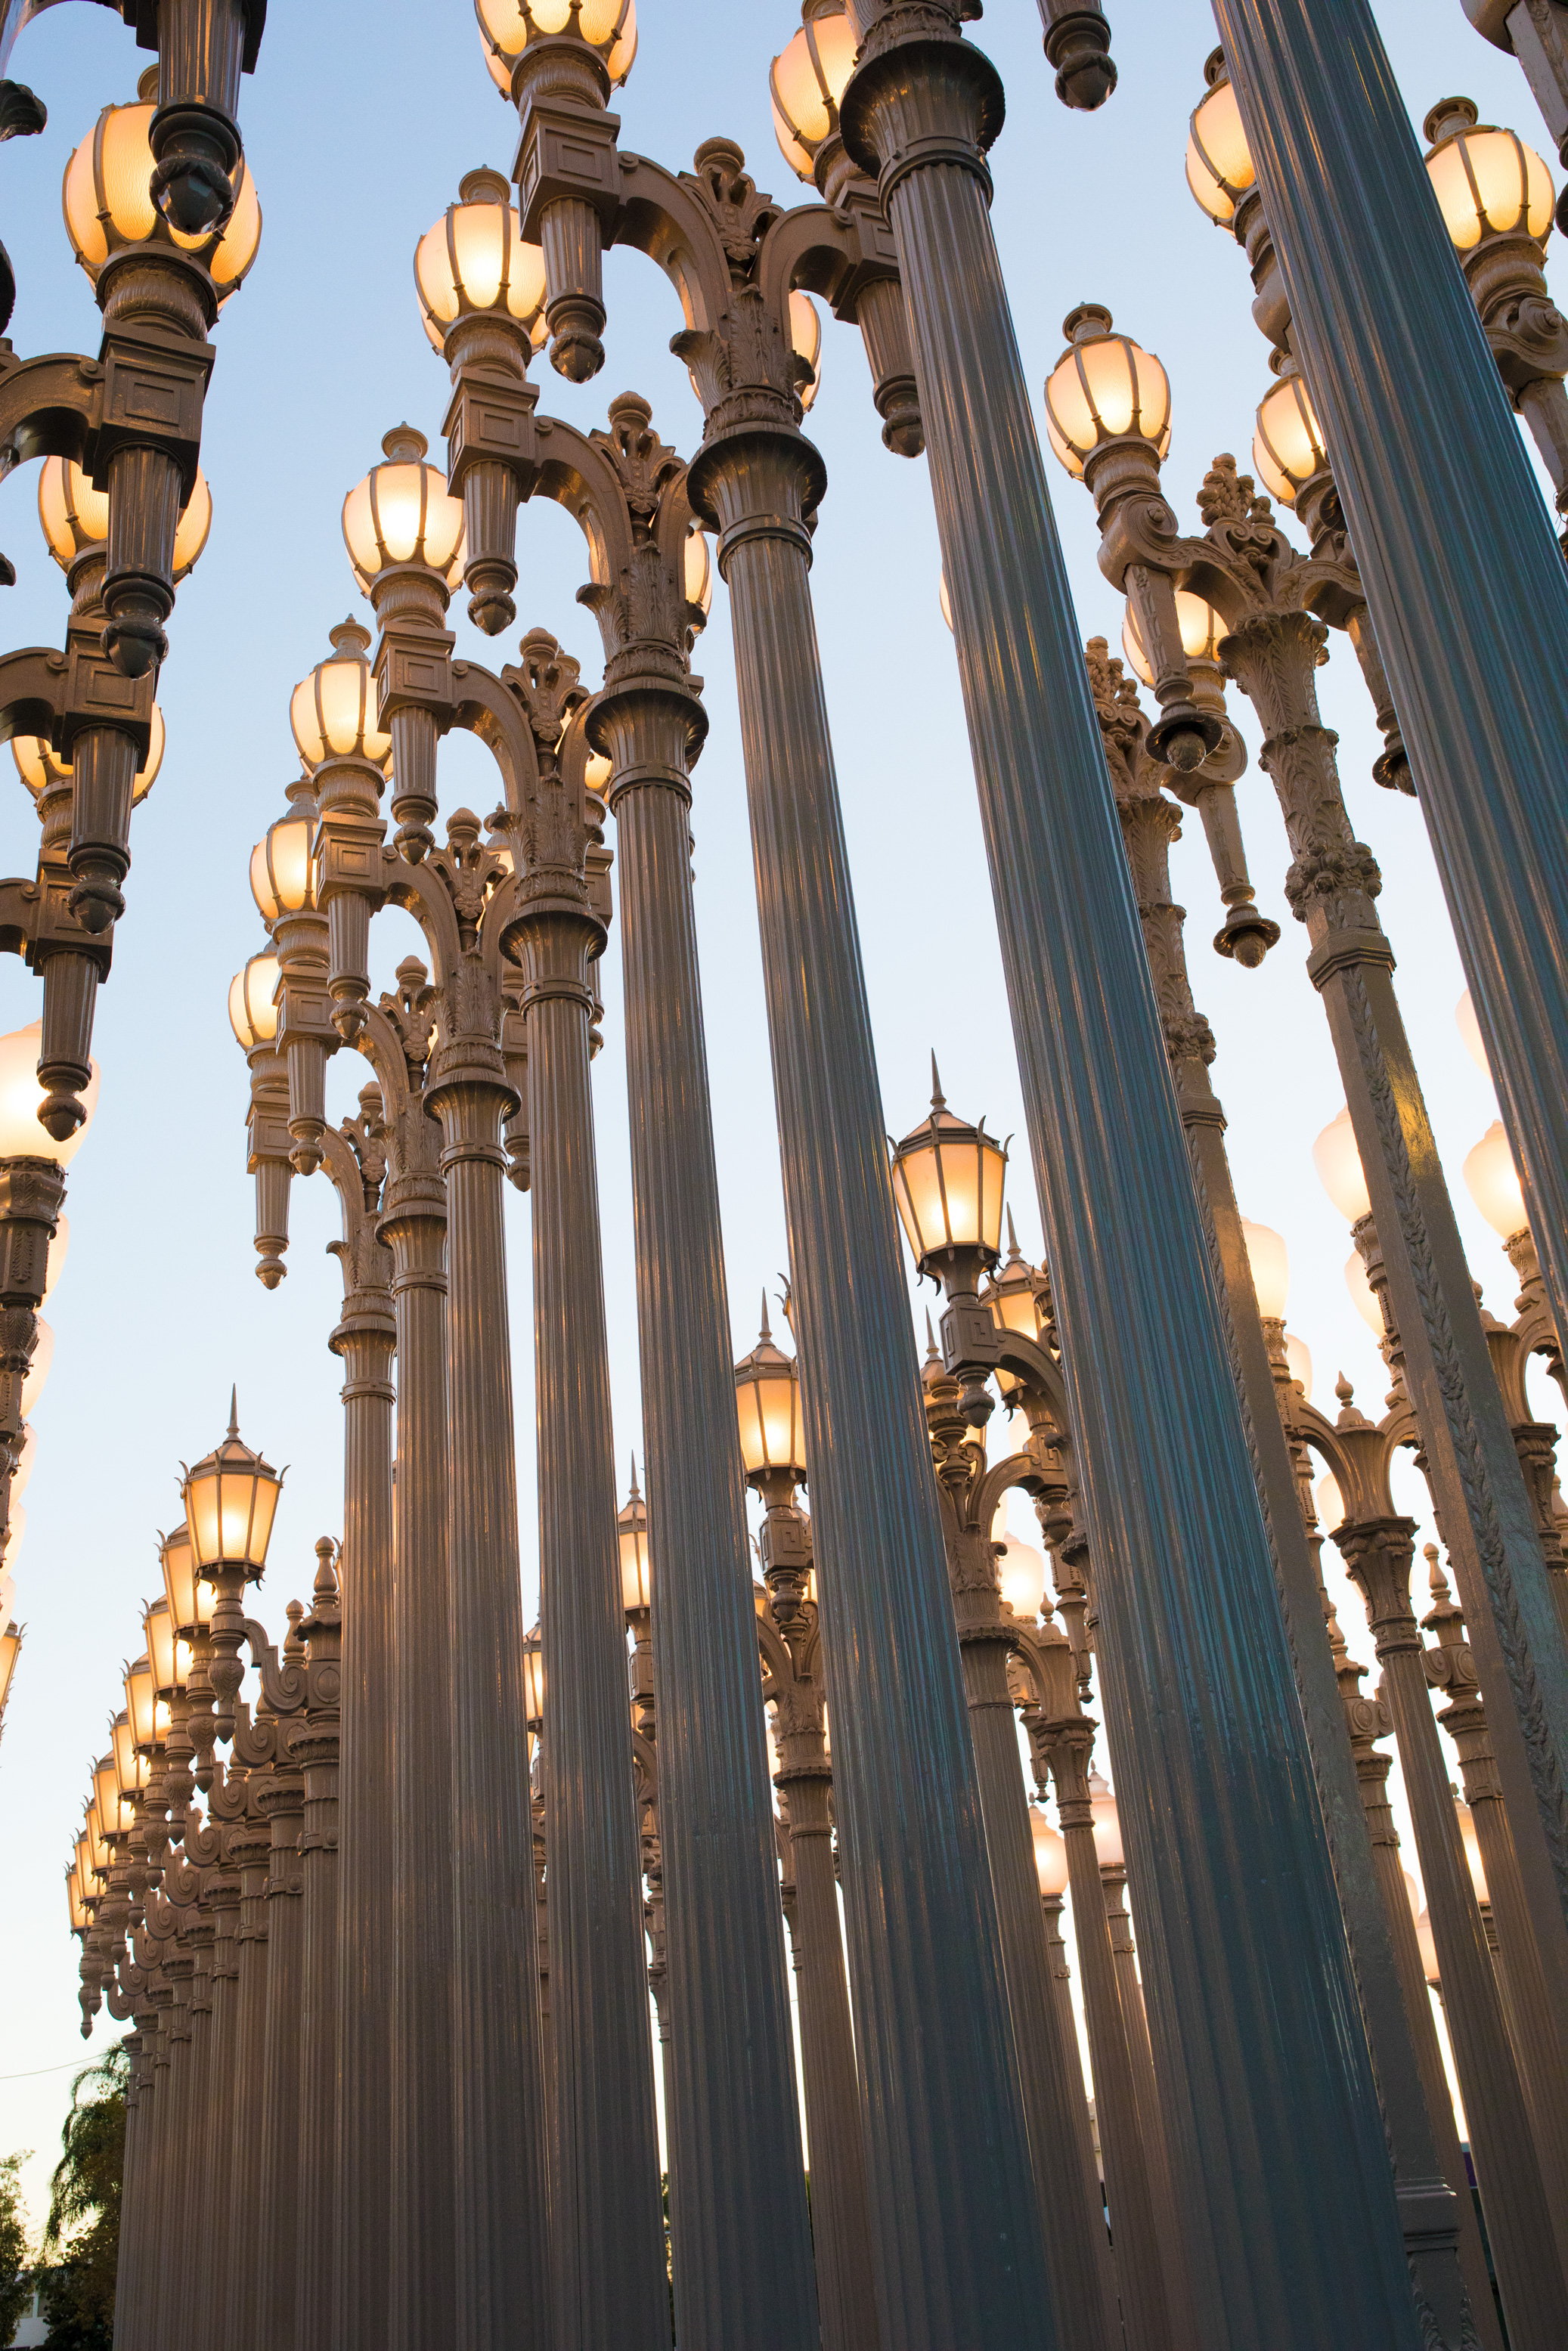 LACMA Lampost feature photography